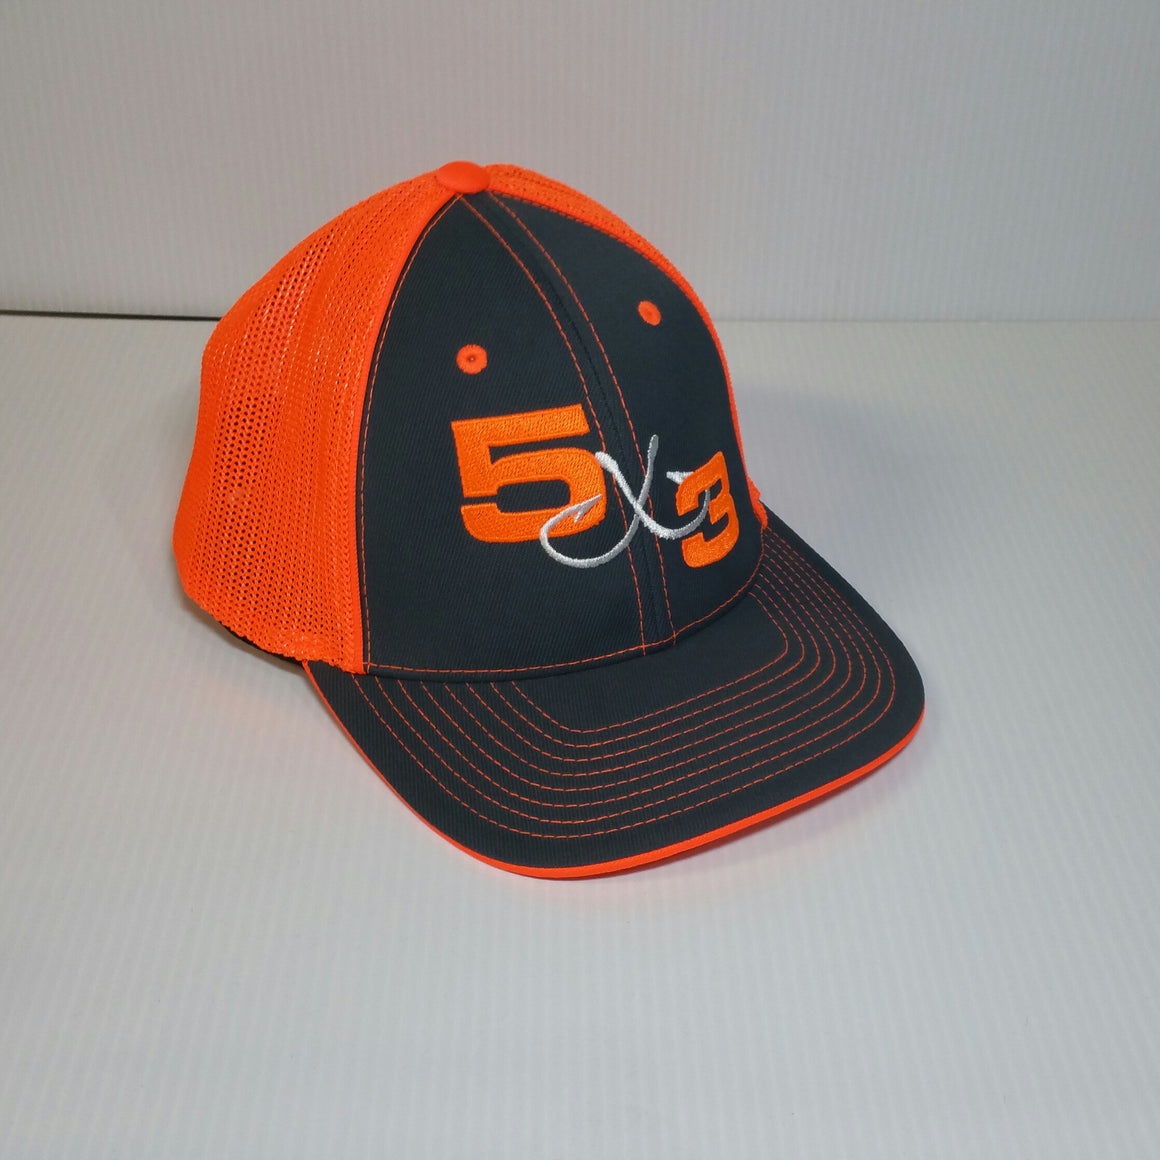 Neon Orange and Gray Fitted Hat